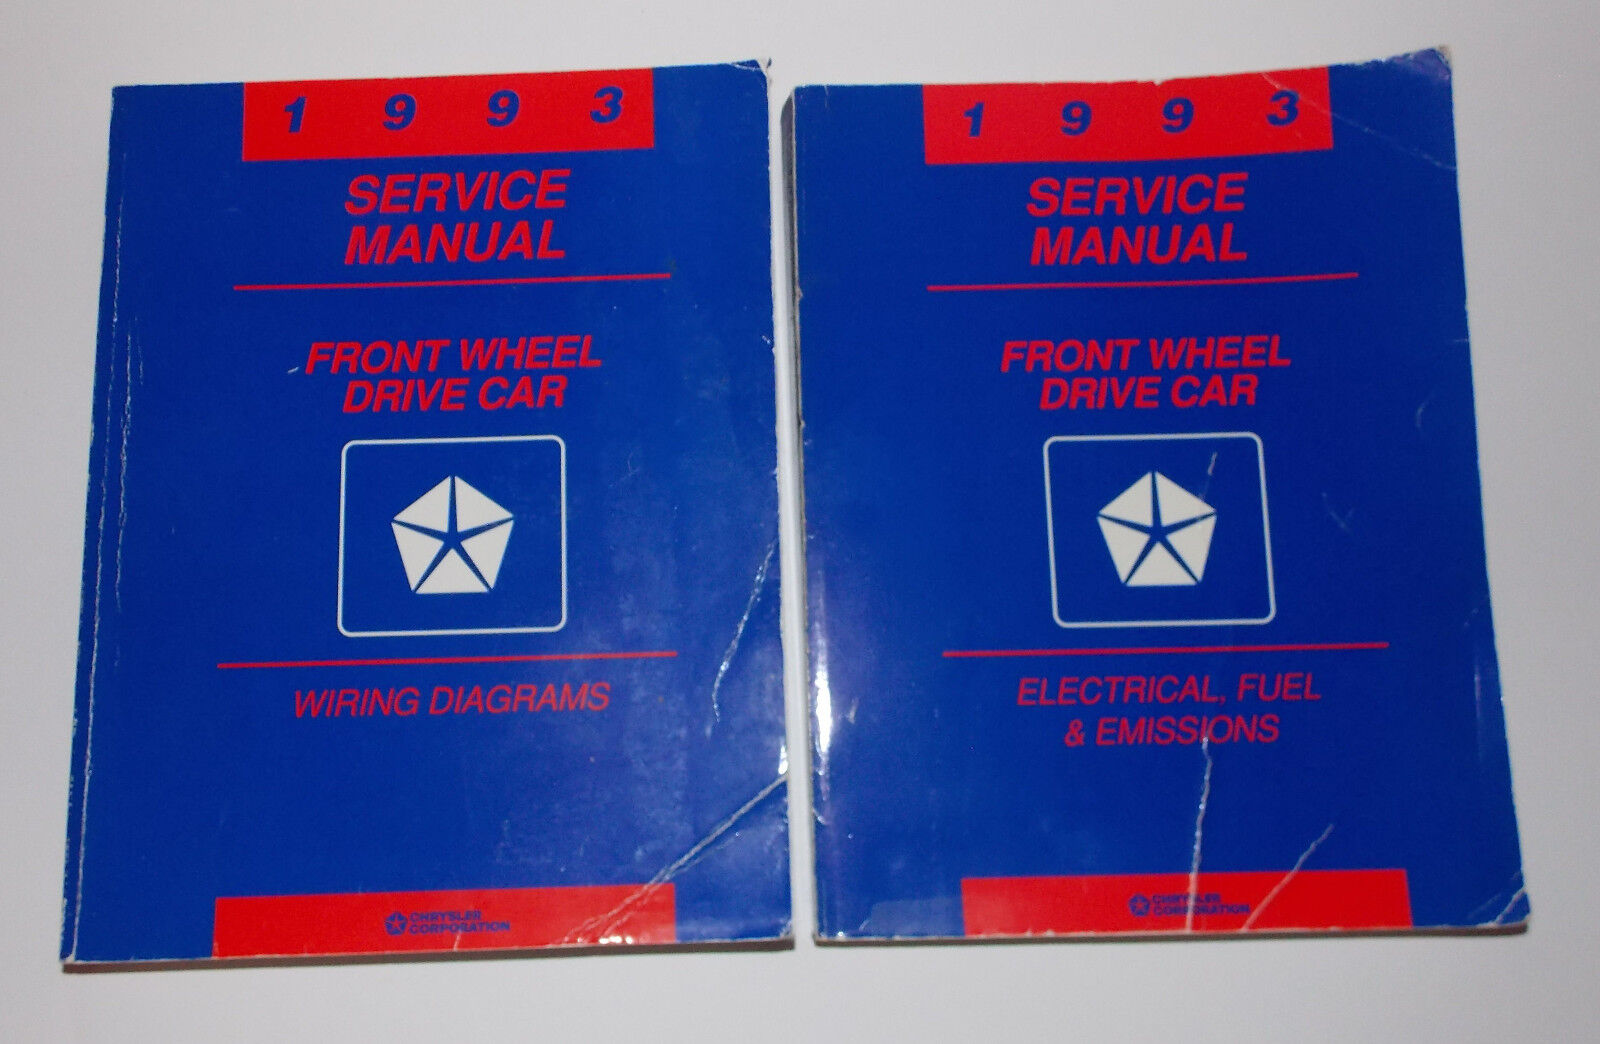 1993 Chrysler Front Wheel Drive Car Manuals Wiring Diagrams Electrical Emissions